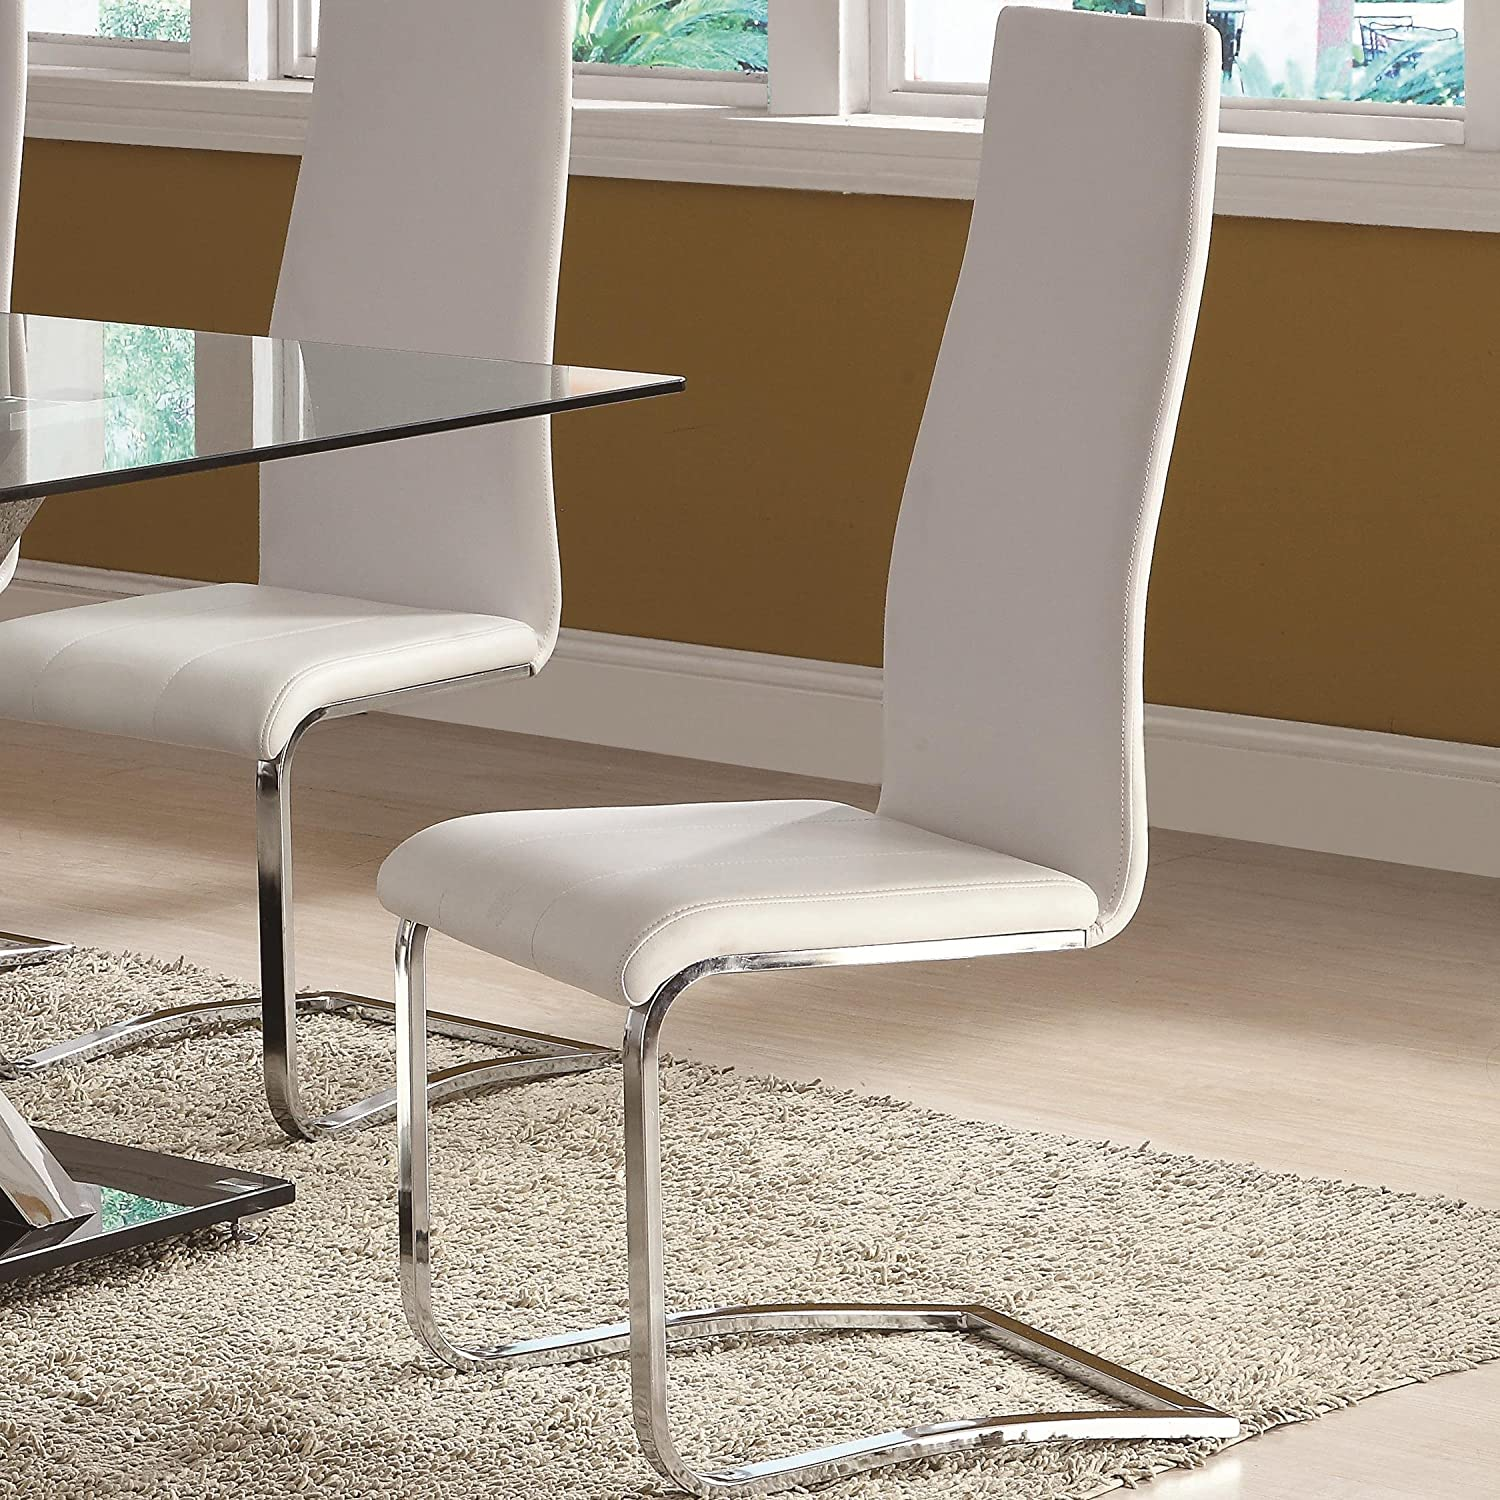 Amazon White Faux Leather Dining Chairs with Chrome Legs Set